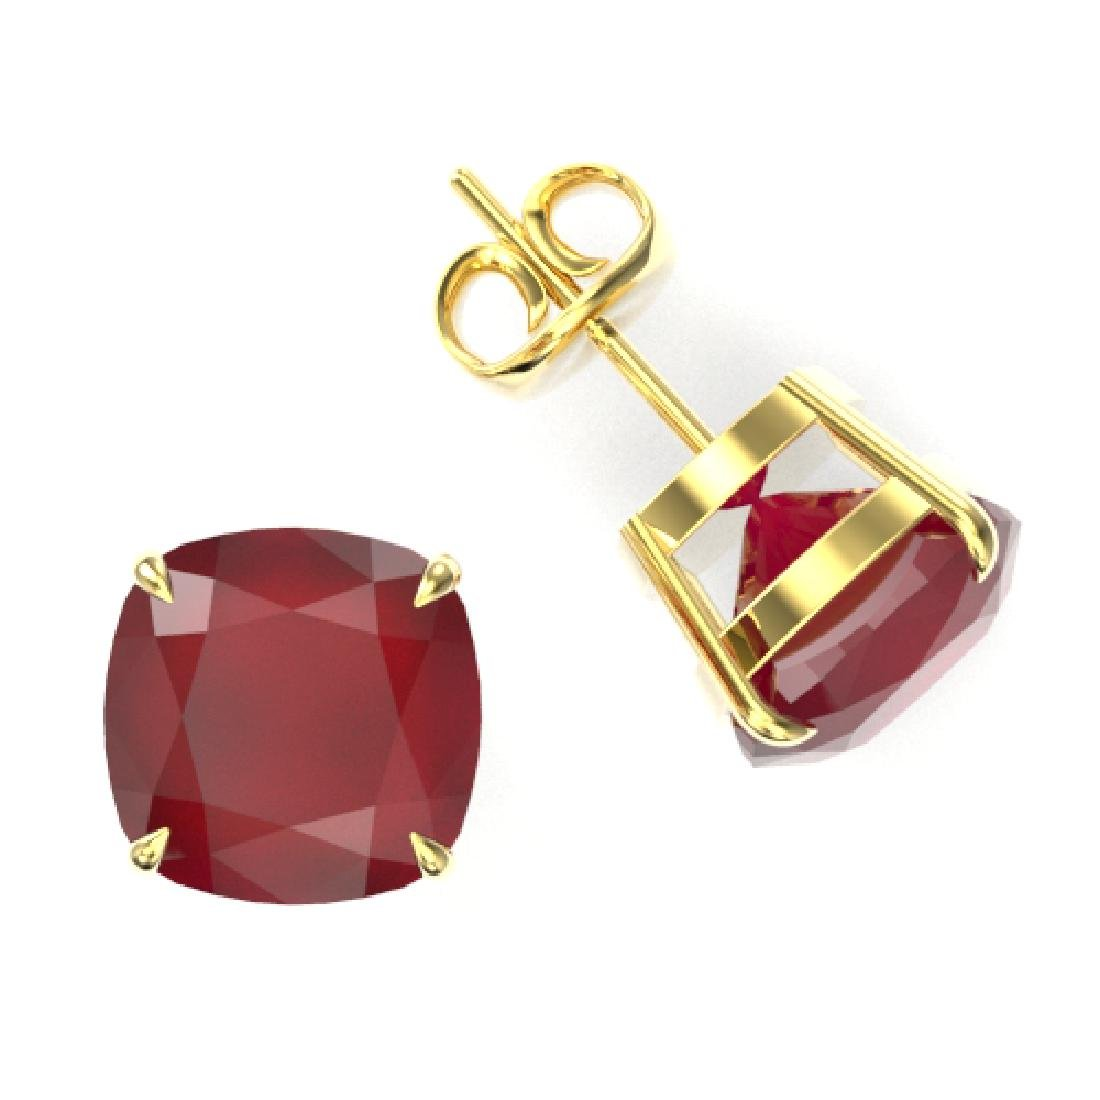 12 CTW Cushion Cut Ruby Designer Solitaire Stud - 2